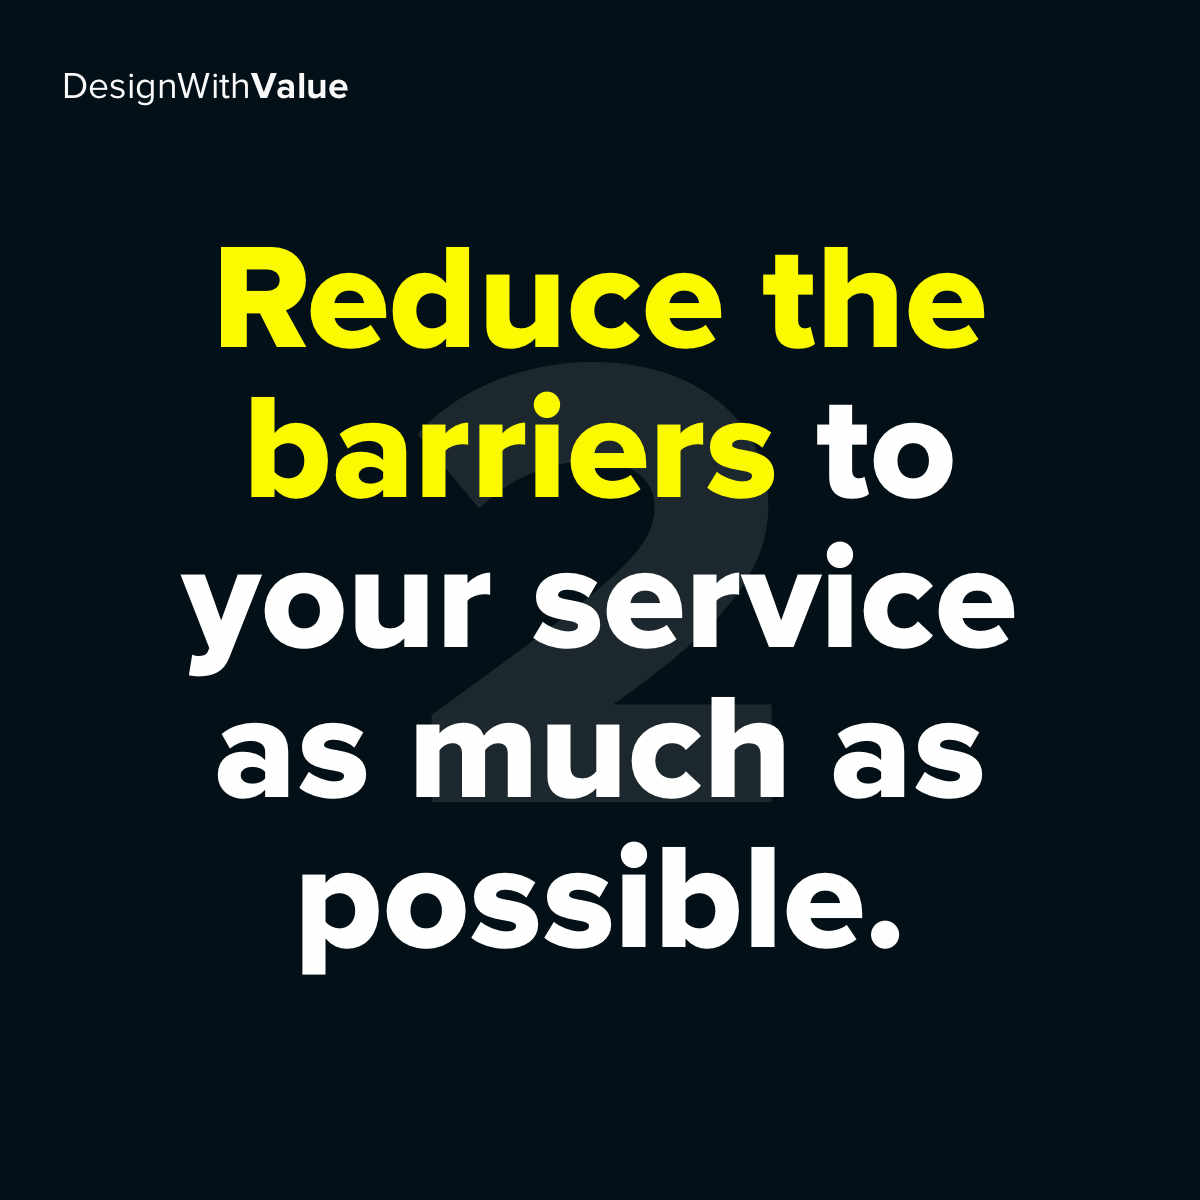 Second reduce the barriers to your service as much as possible.